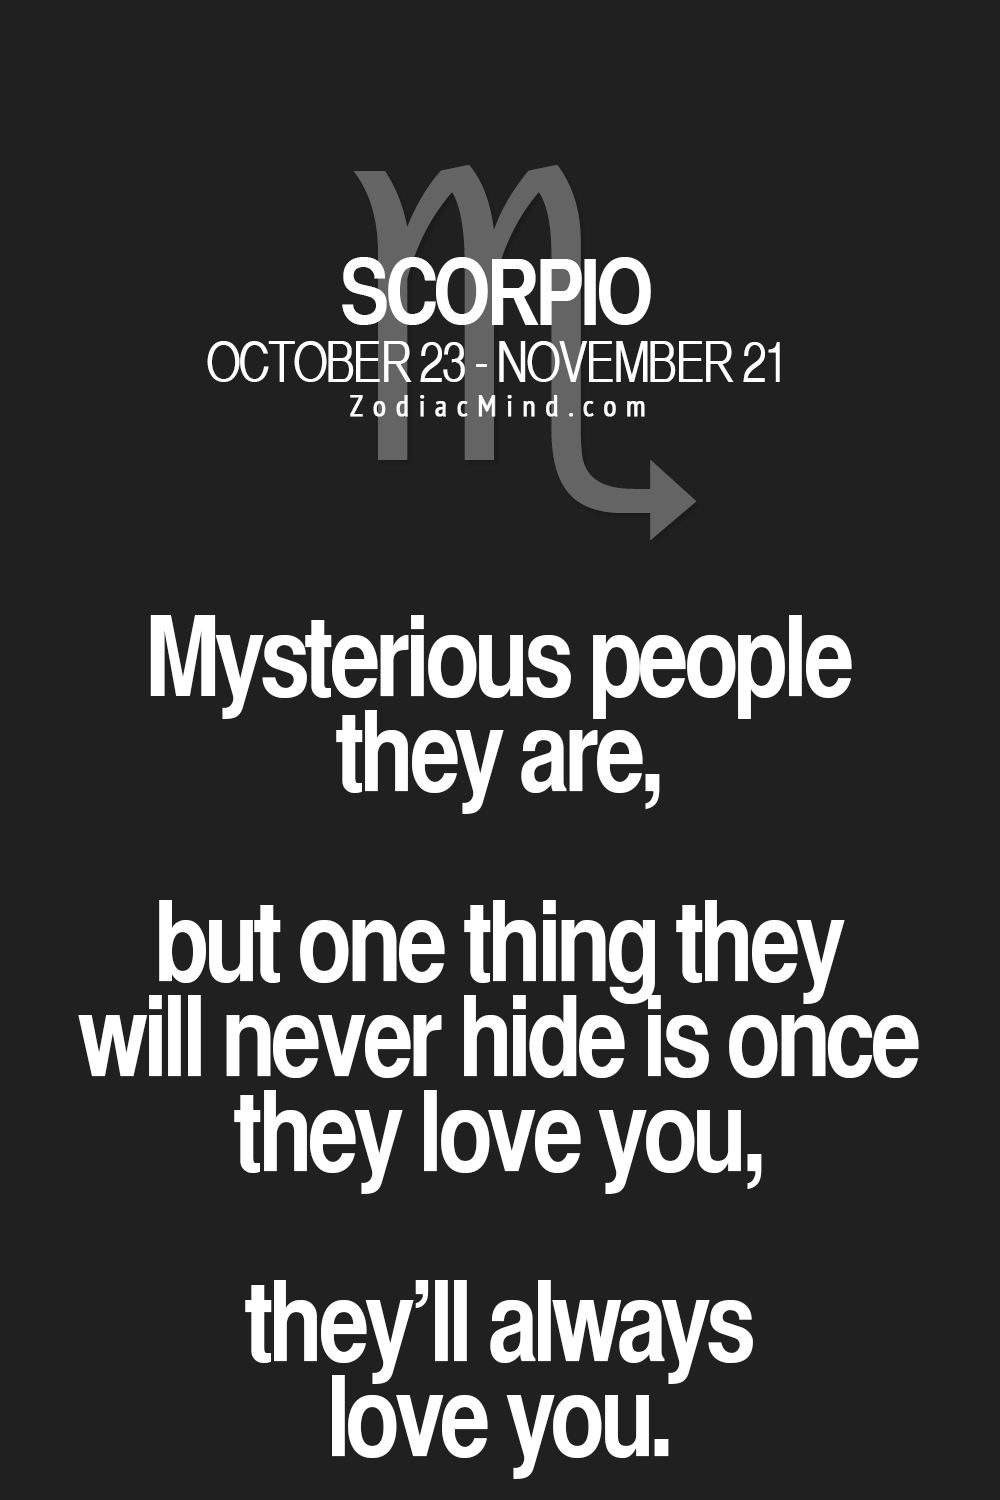 """zodiacmind: """"Fun facts about your sign here """" 